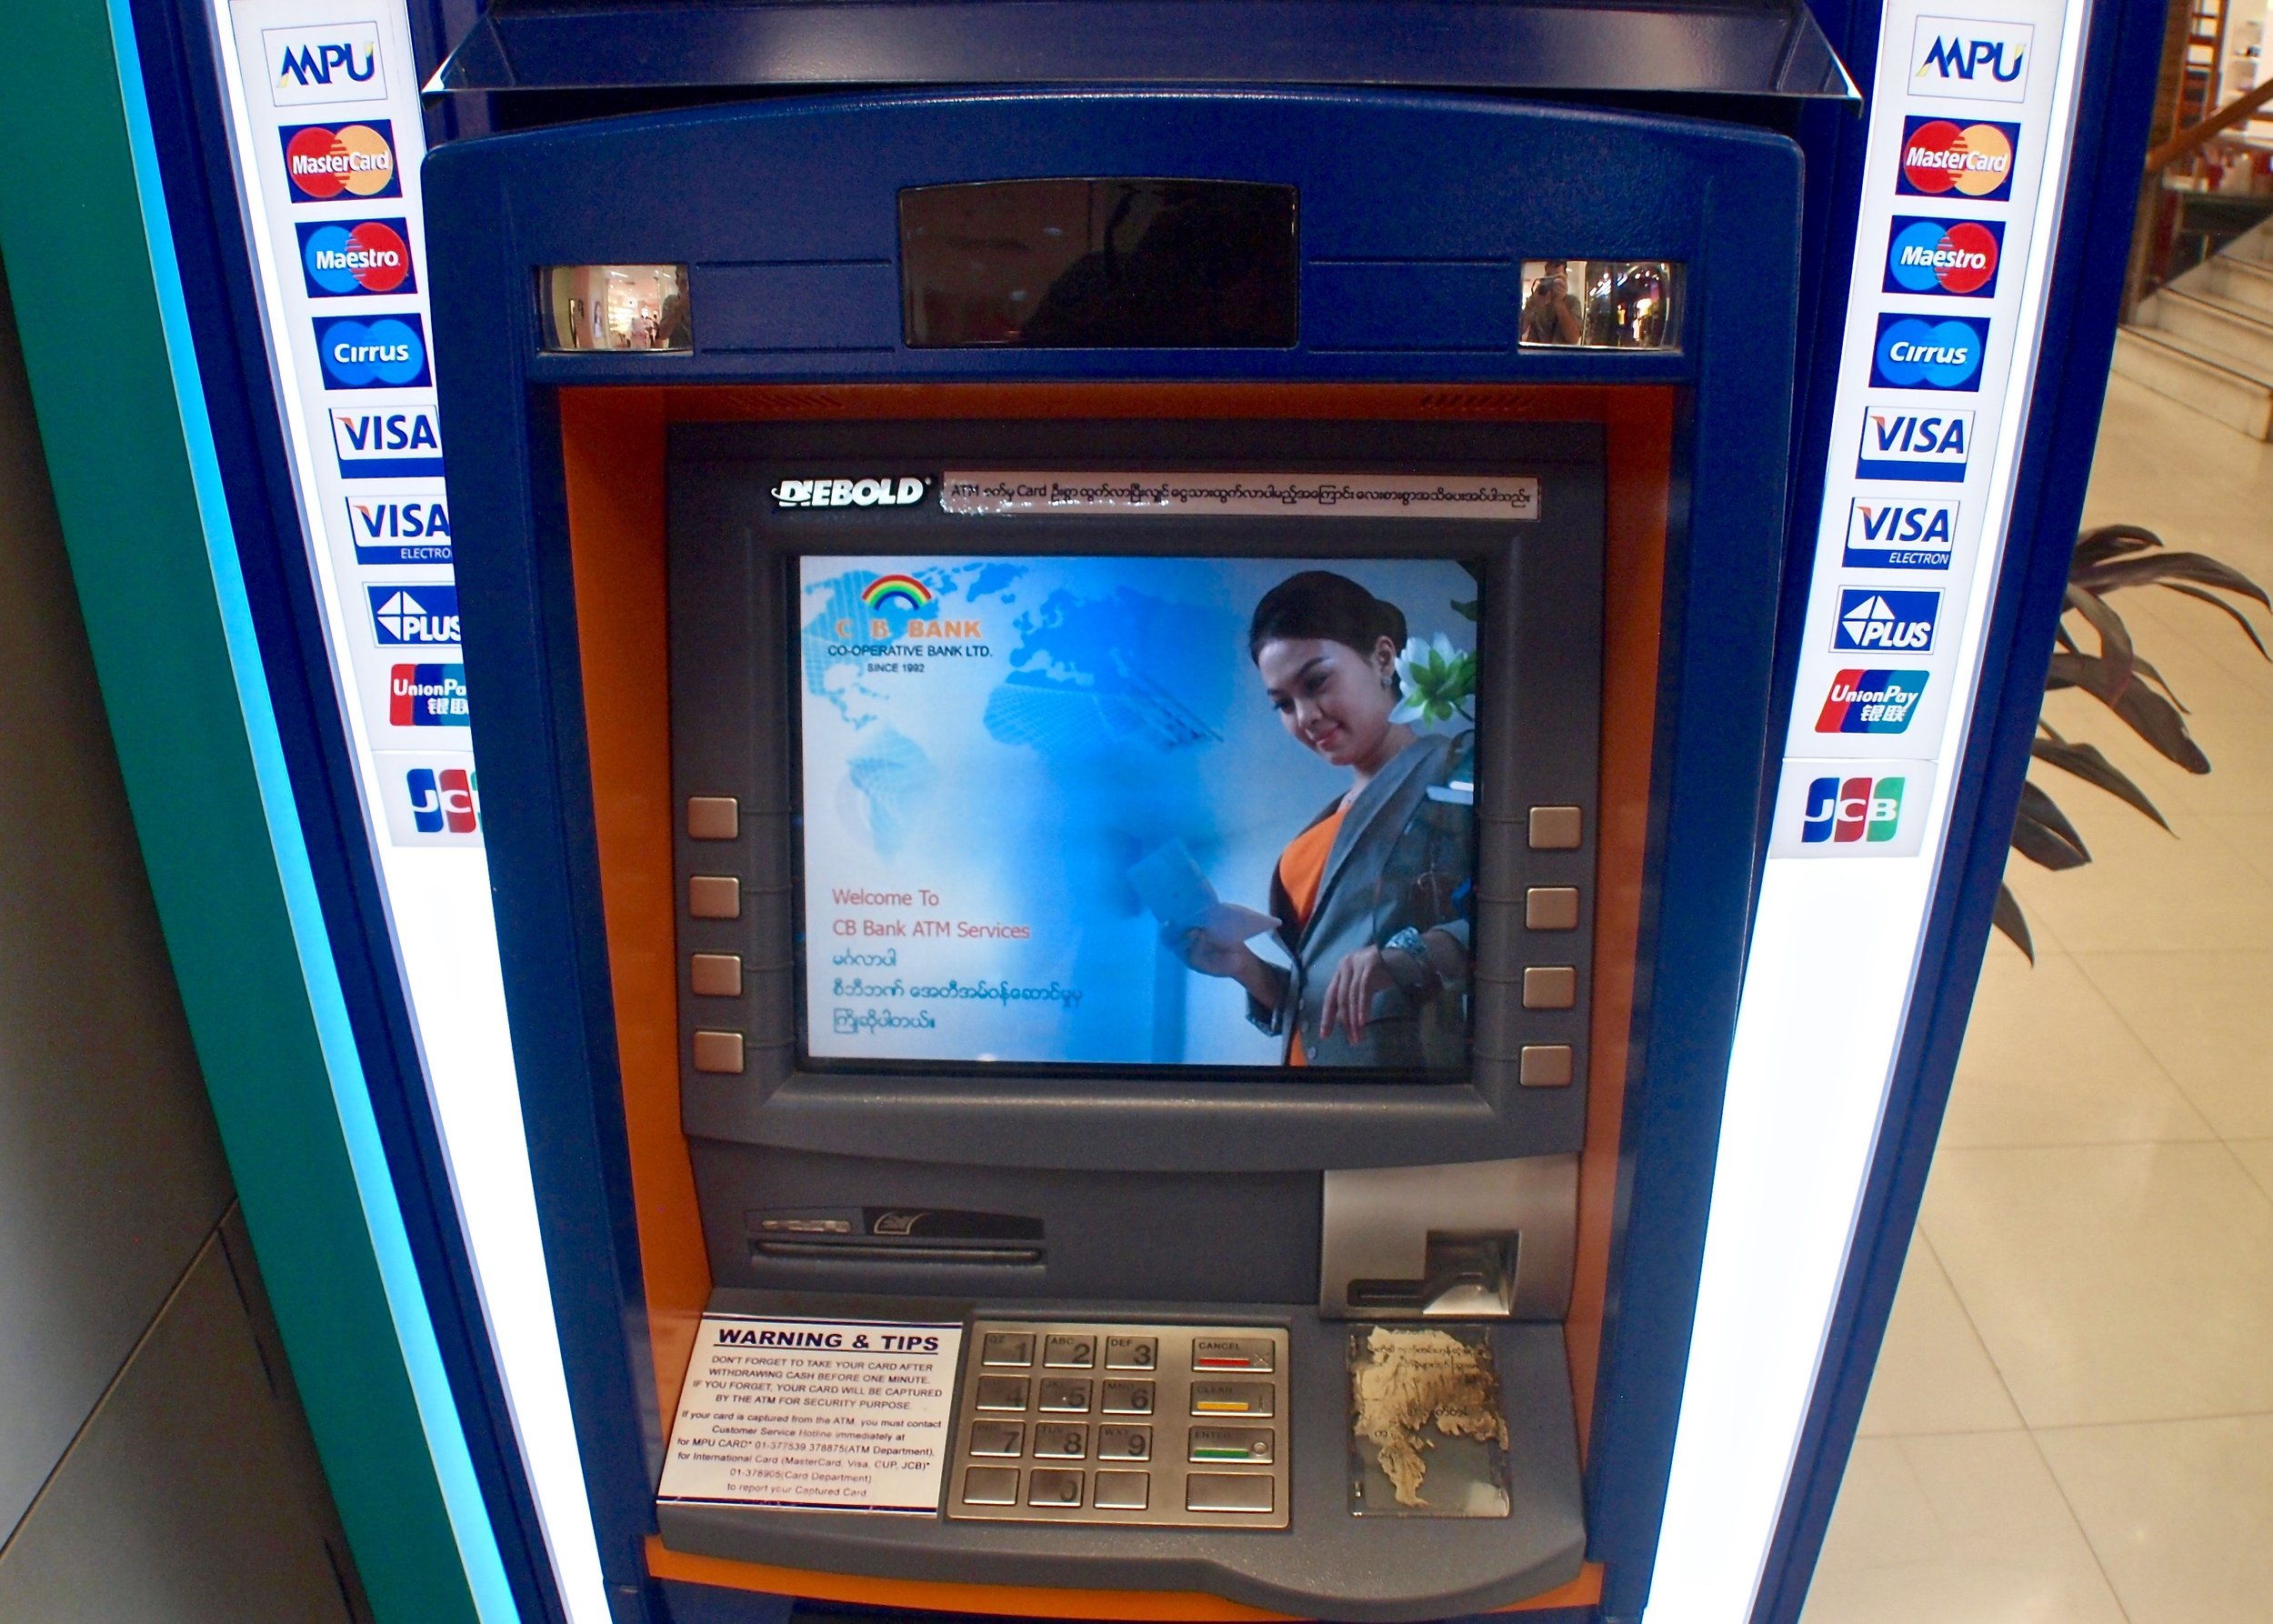 A brand new ATM in Junction Center shopping mall, Yangon, Myanmar. (C) Remko Tanis